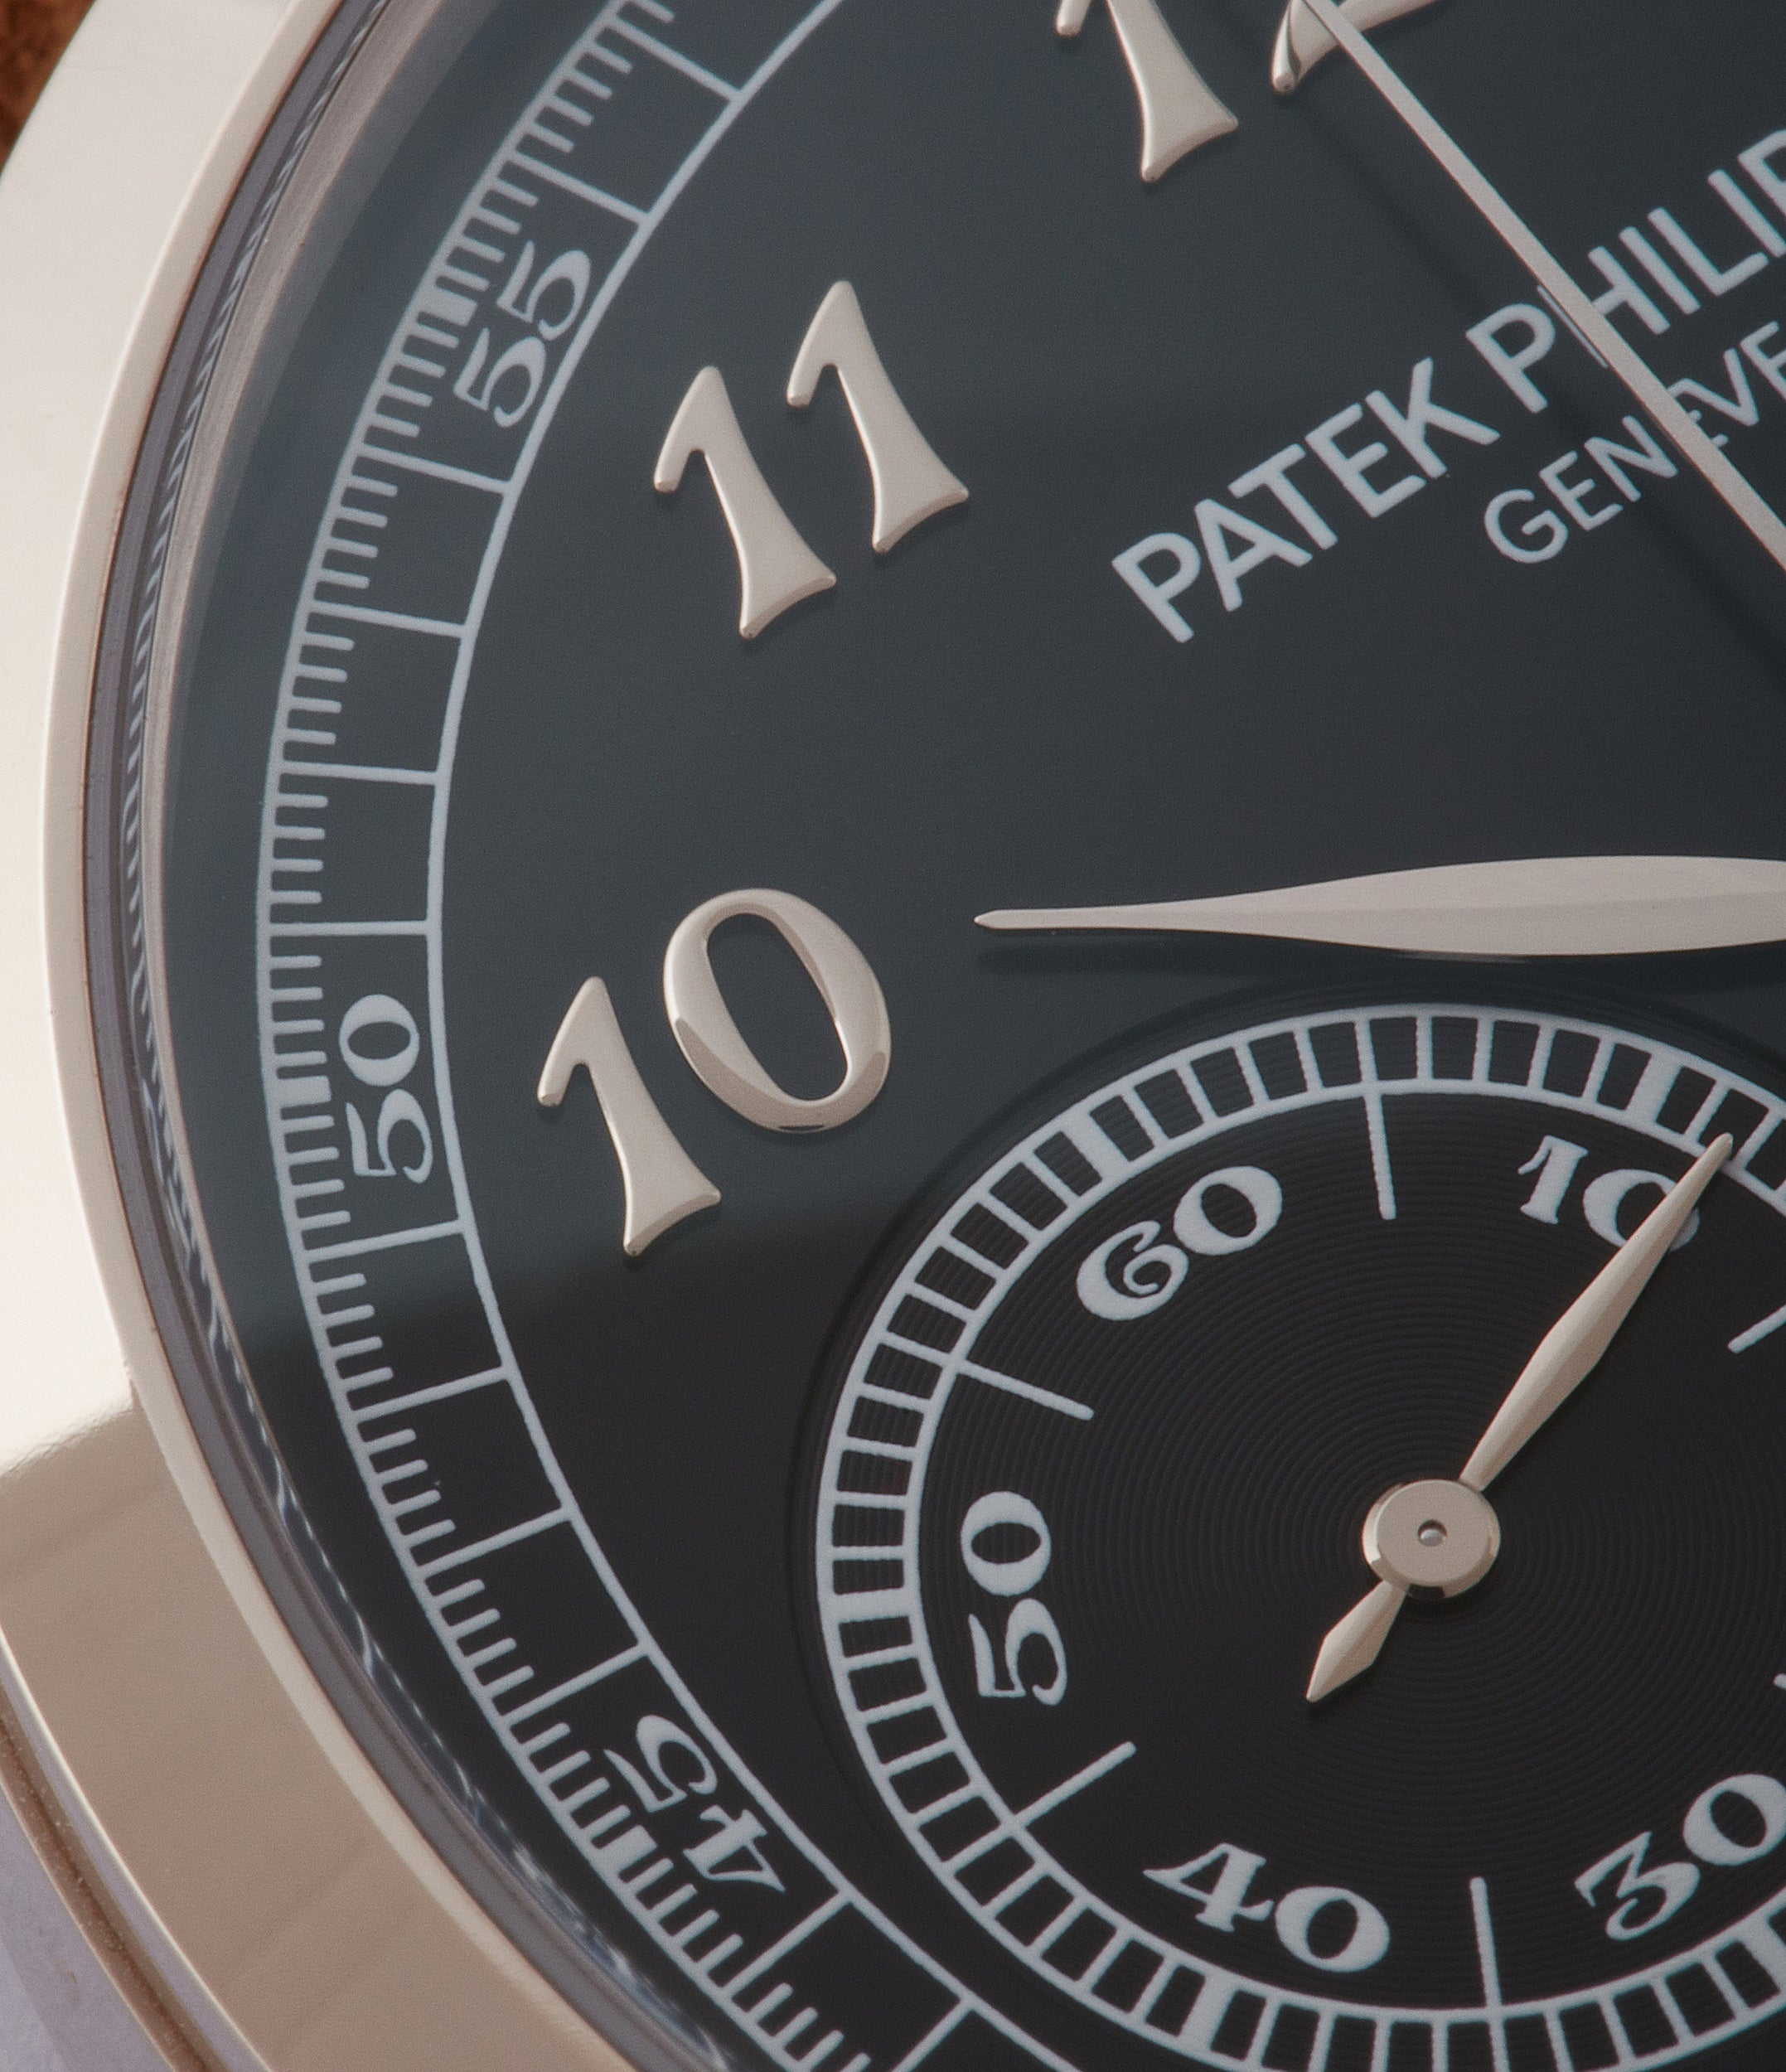 black dial Patek Philippe Chronograph 5170G-010 white gold pre-owned watch for sale online at A Collected Man London UK specialist of rare watches